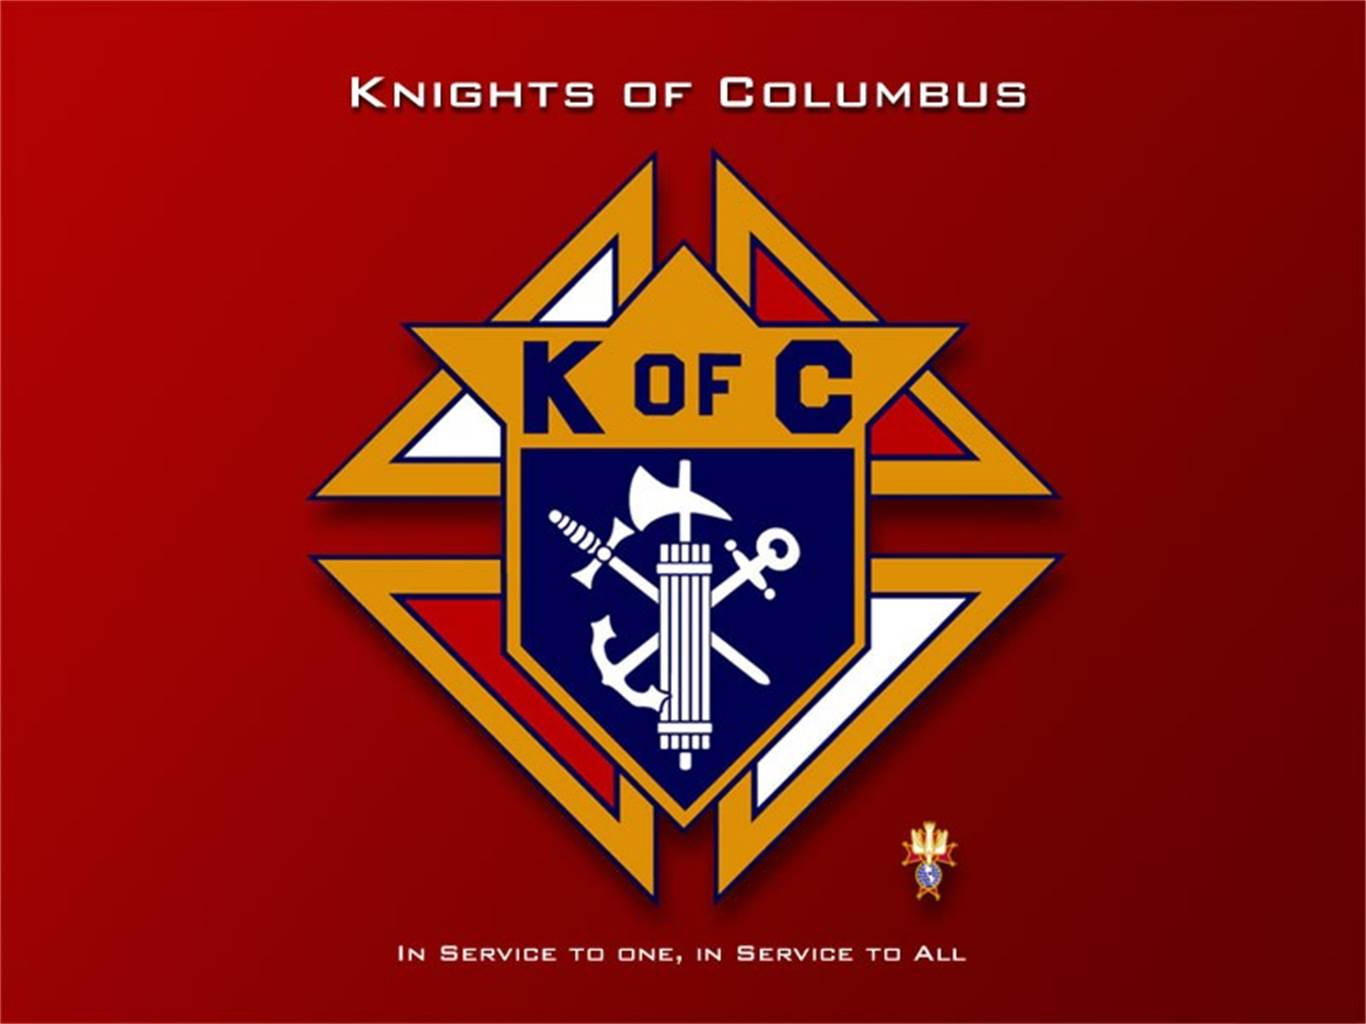 135th Anniversary of the Founding of the Knights of Columbus